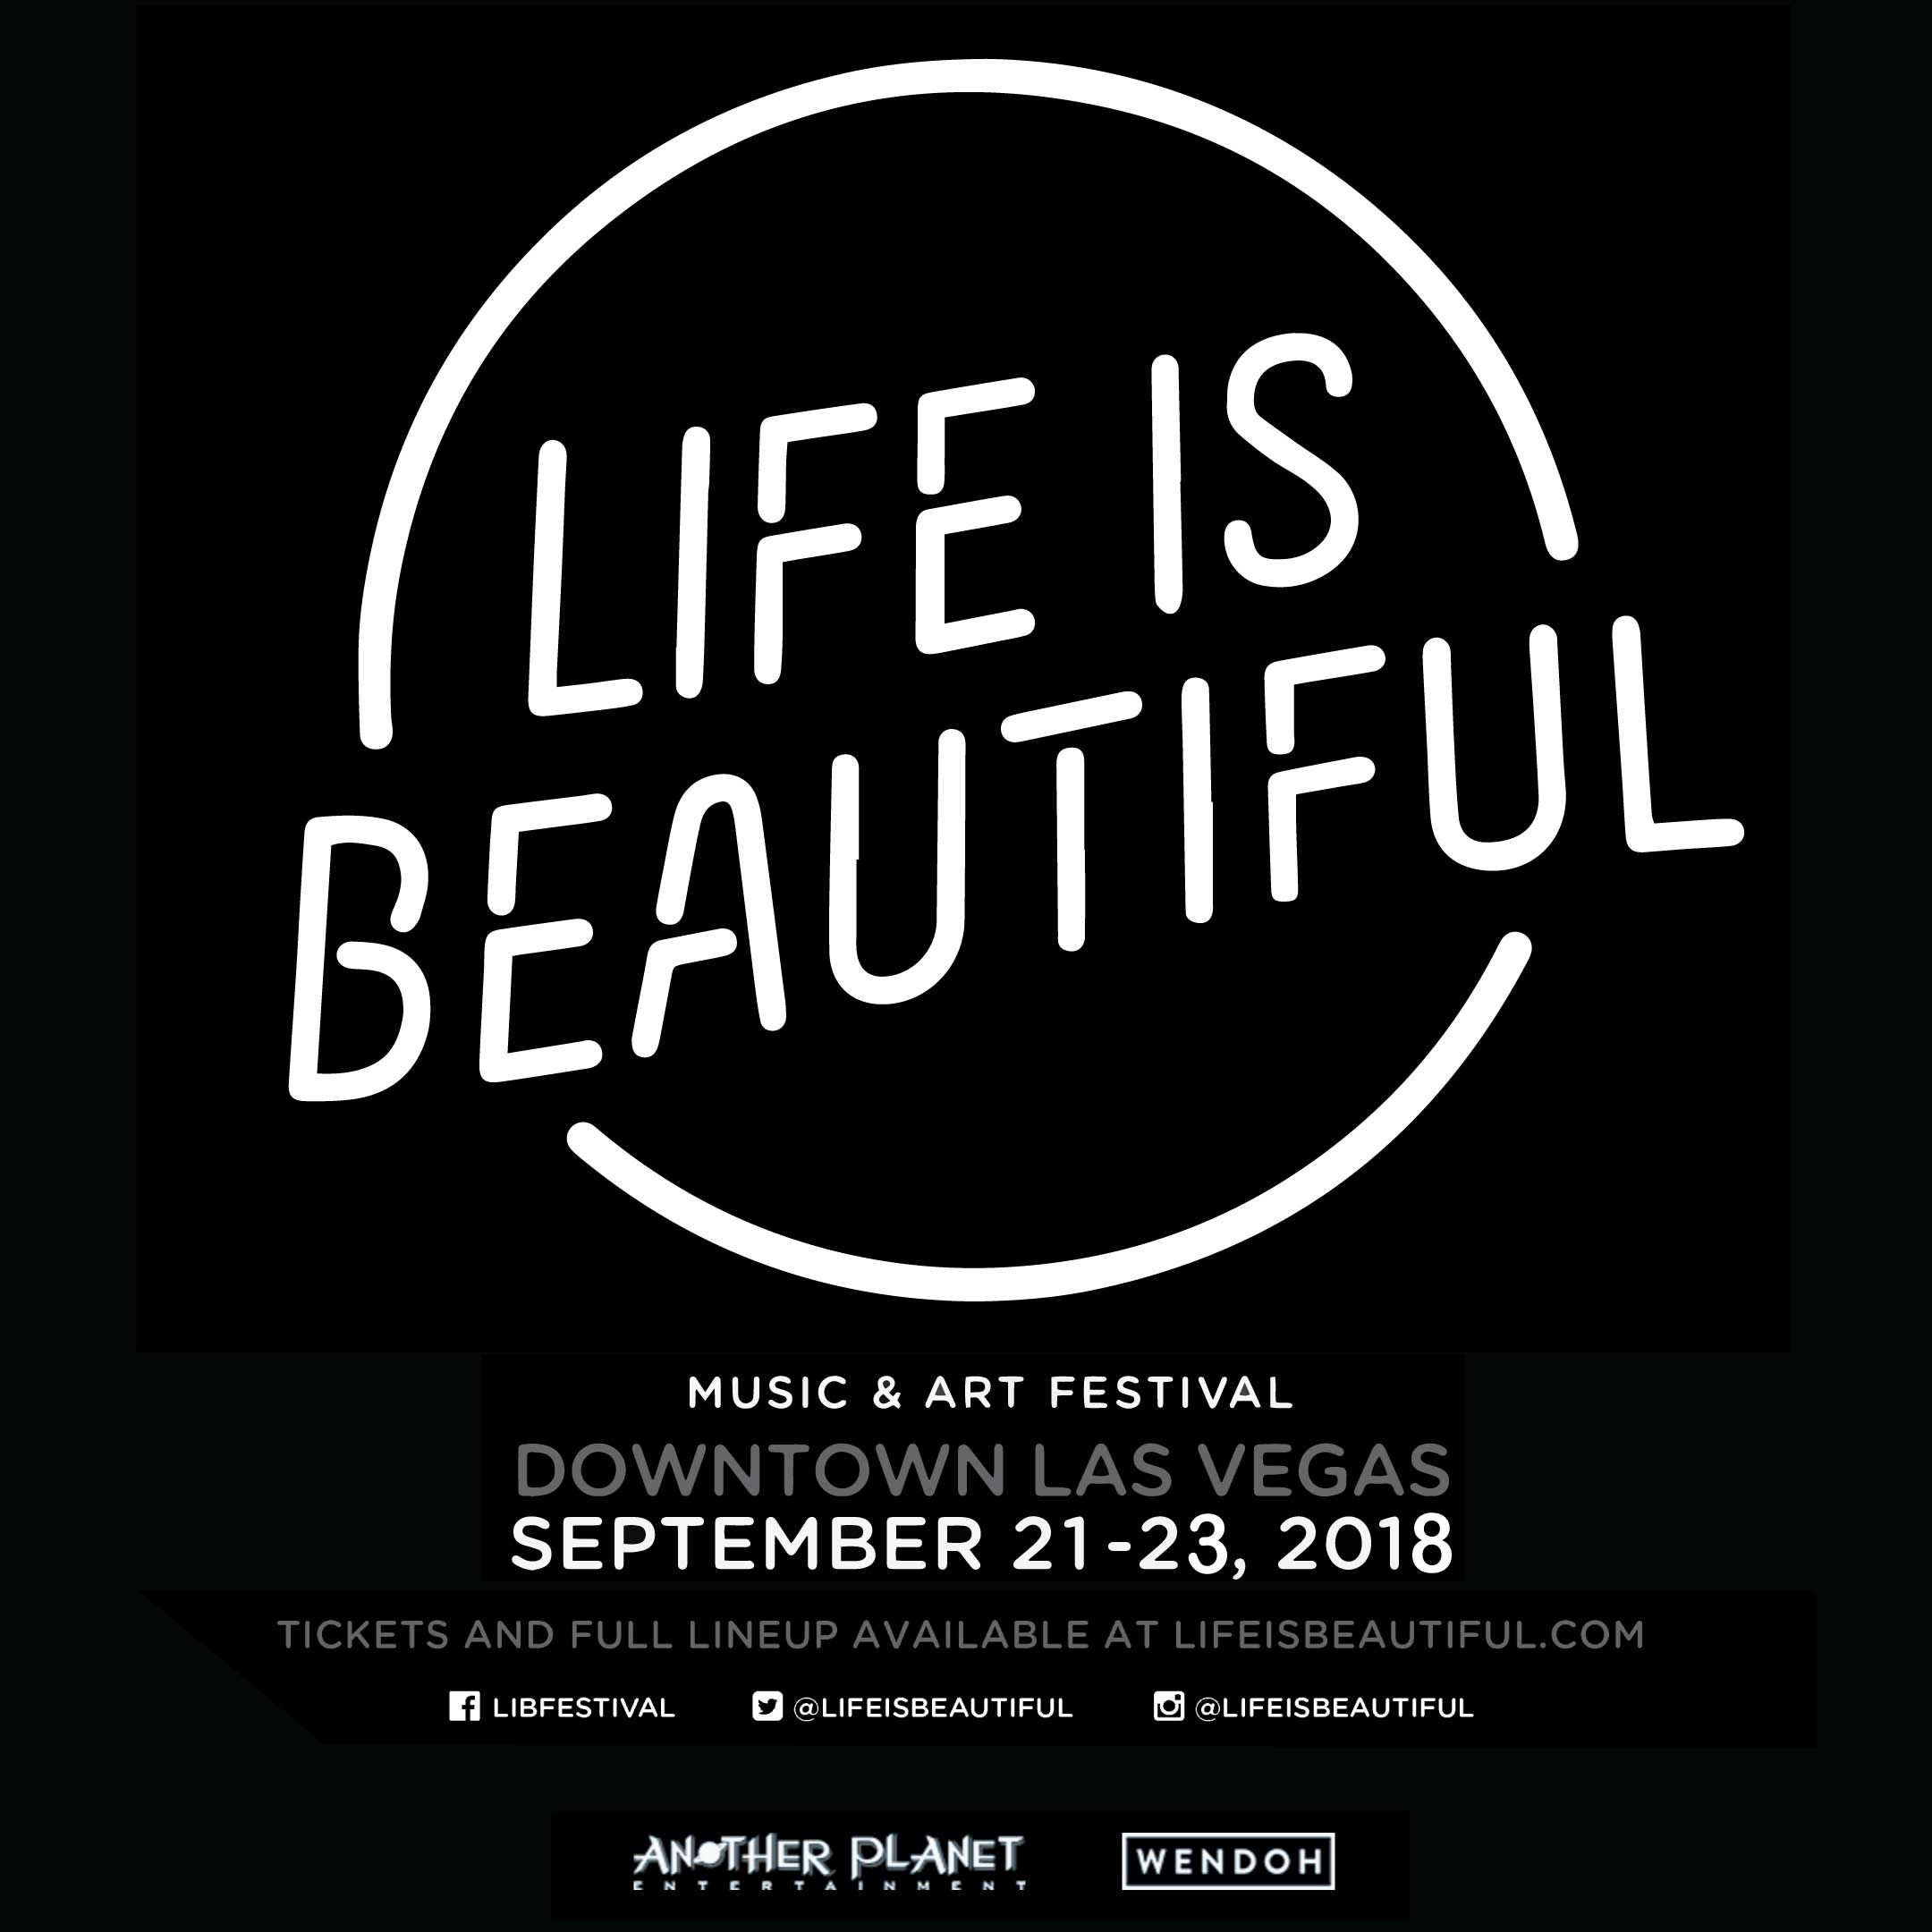 life-is-beautiful-festival-2018.jpg